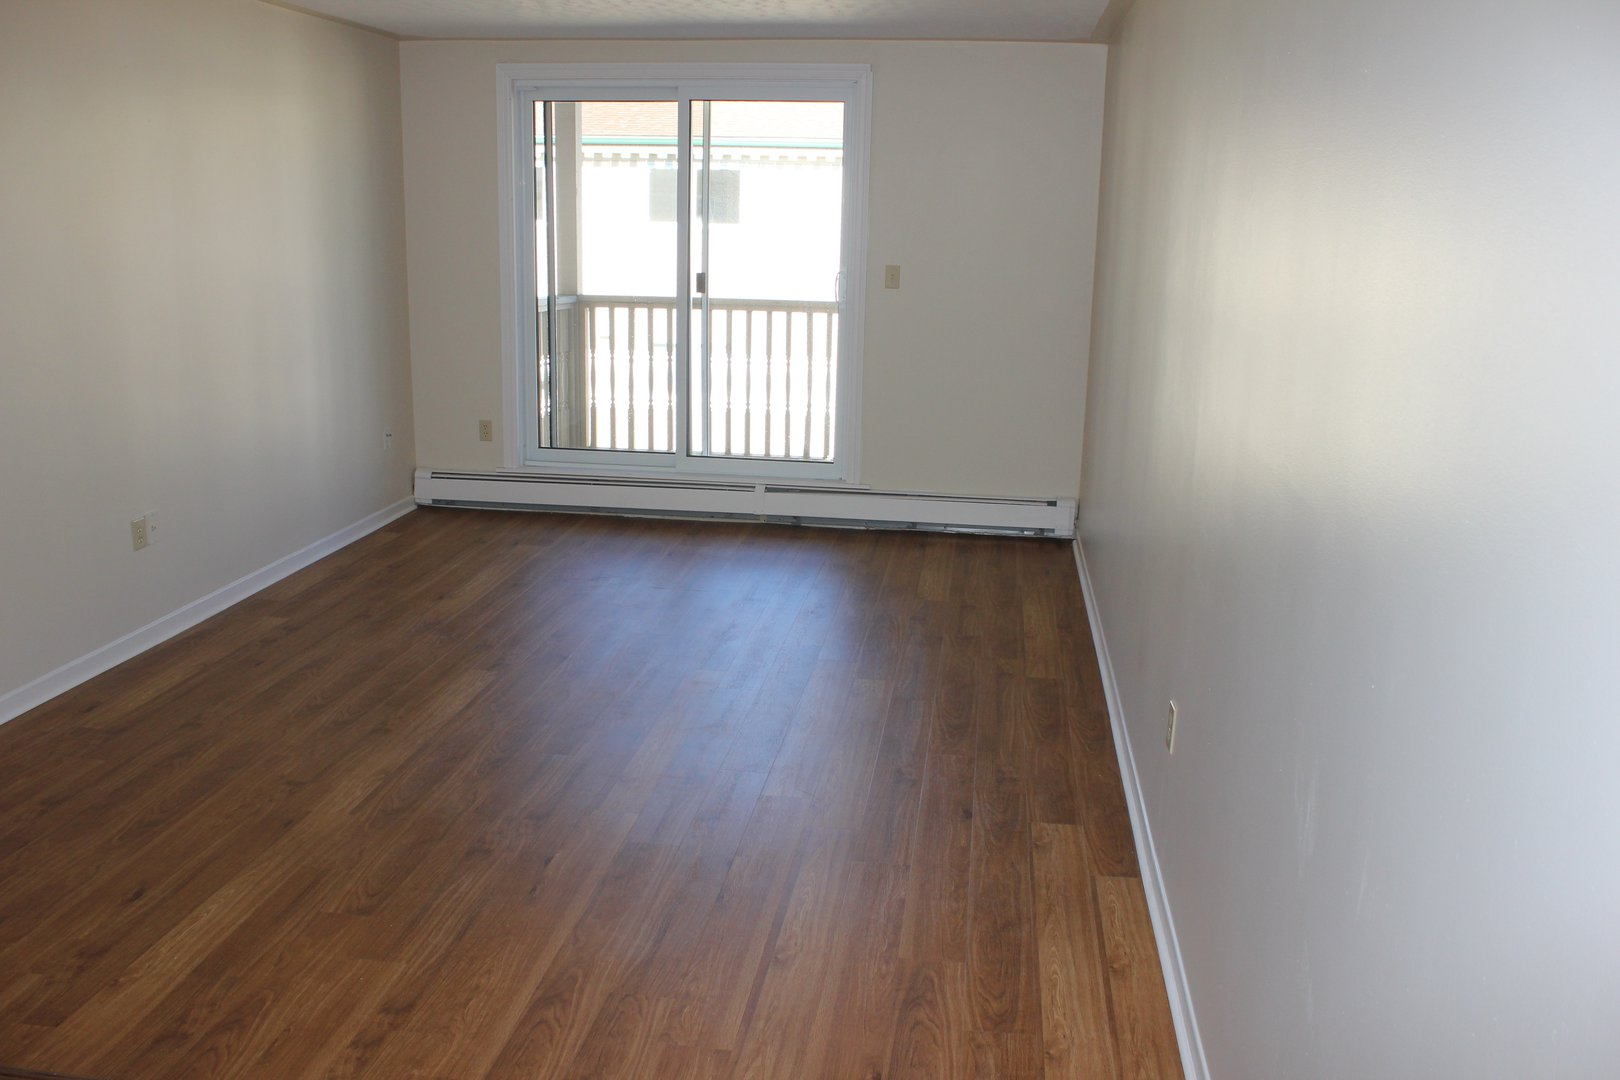 Apartment for rent at 96 Highfield Park Drive G, Dartmouth, NS. This is the empty room with hardwood floor and natural light.